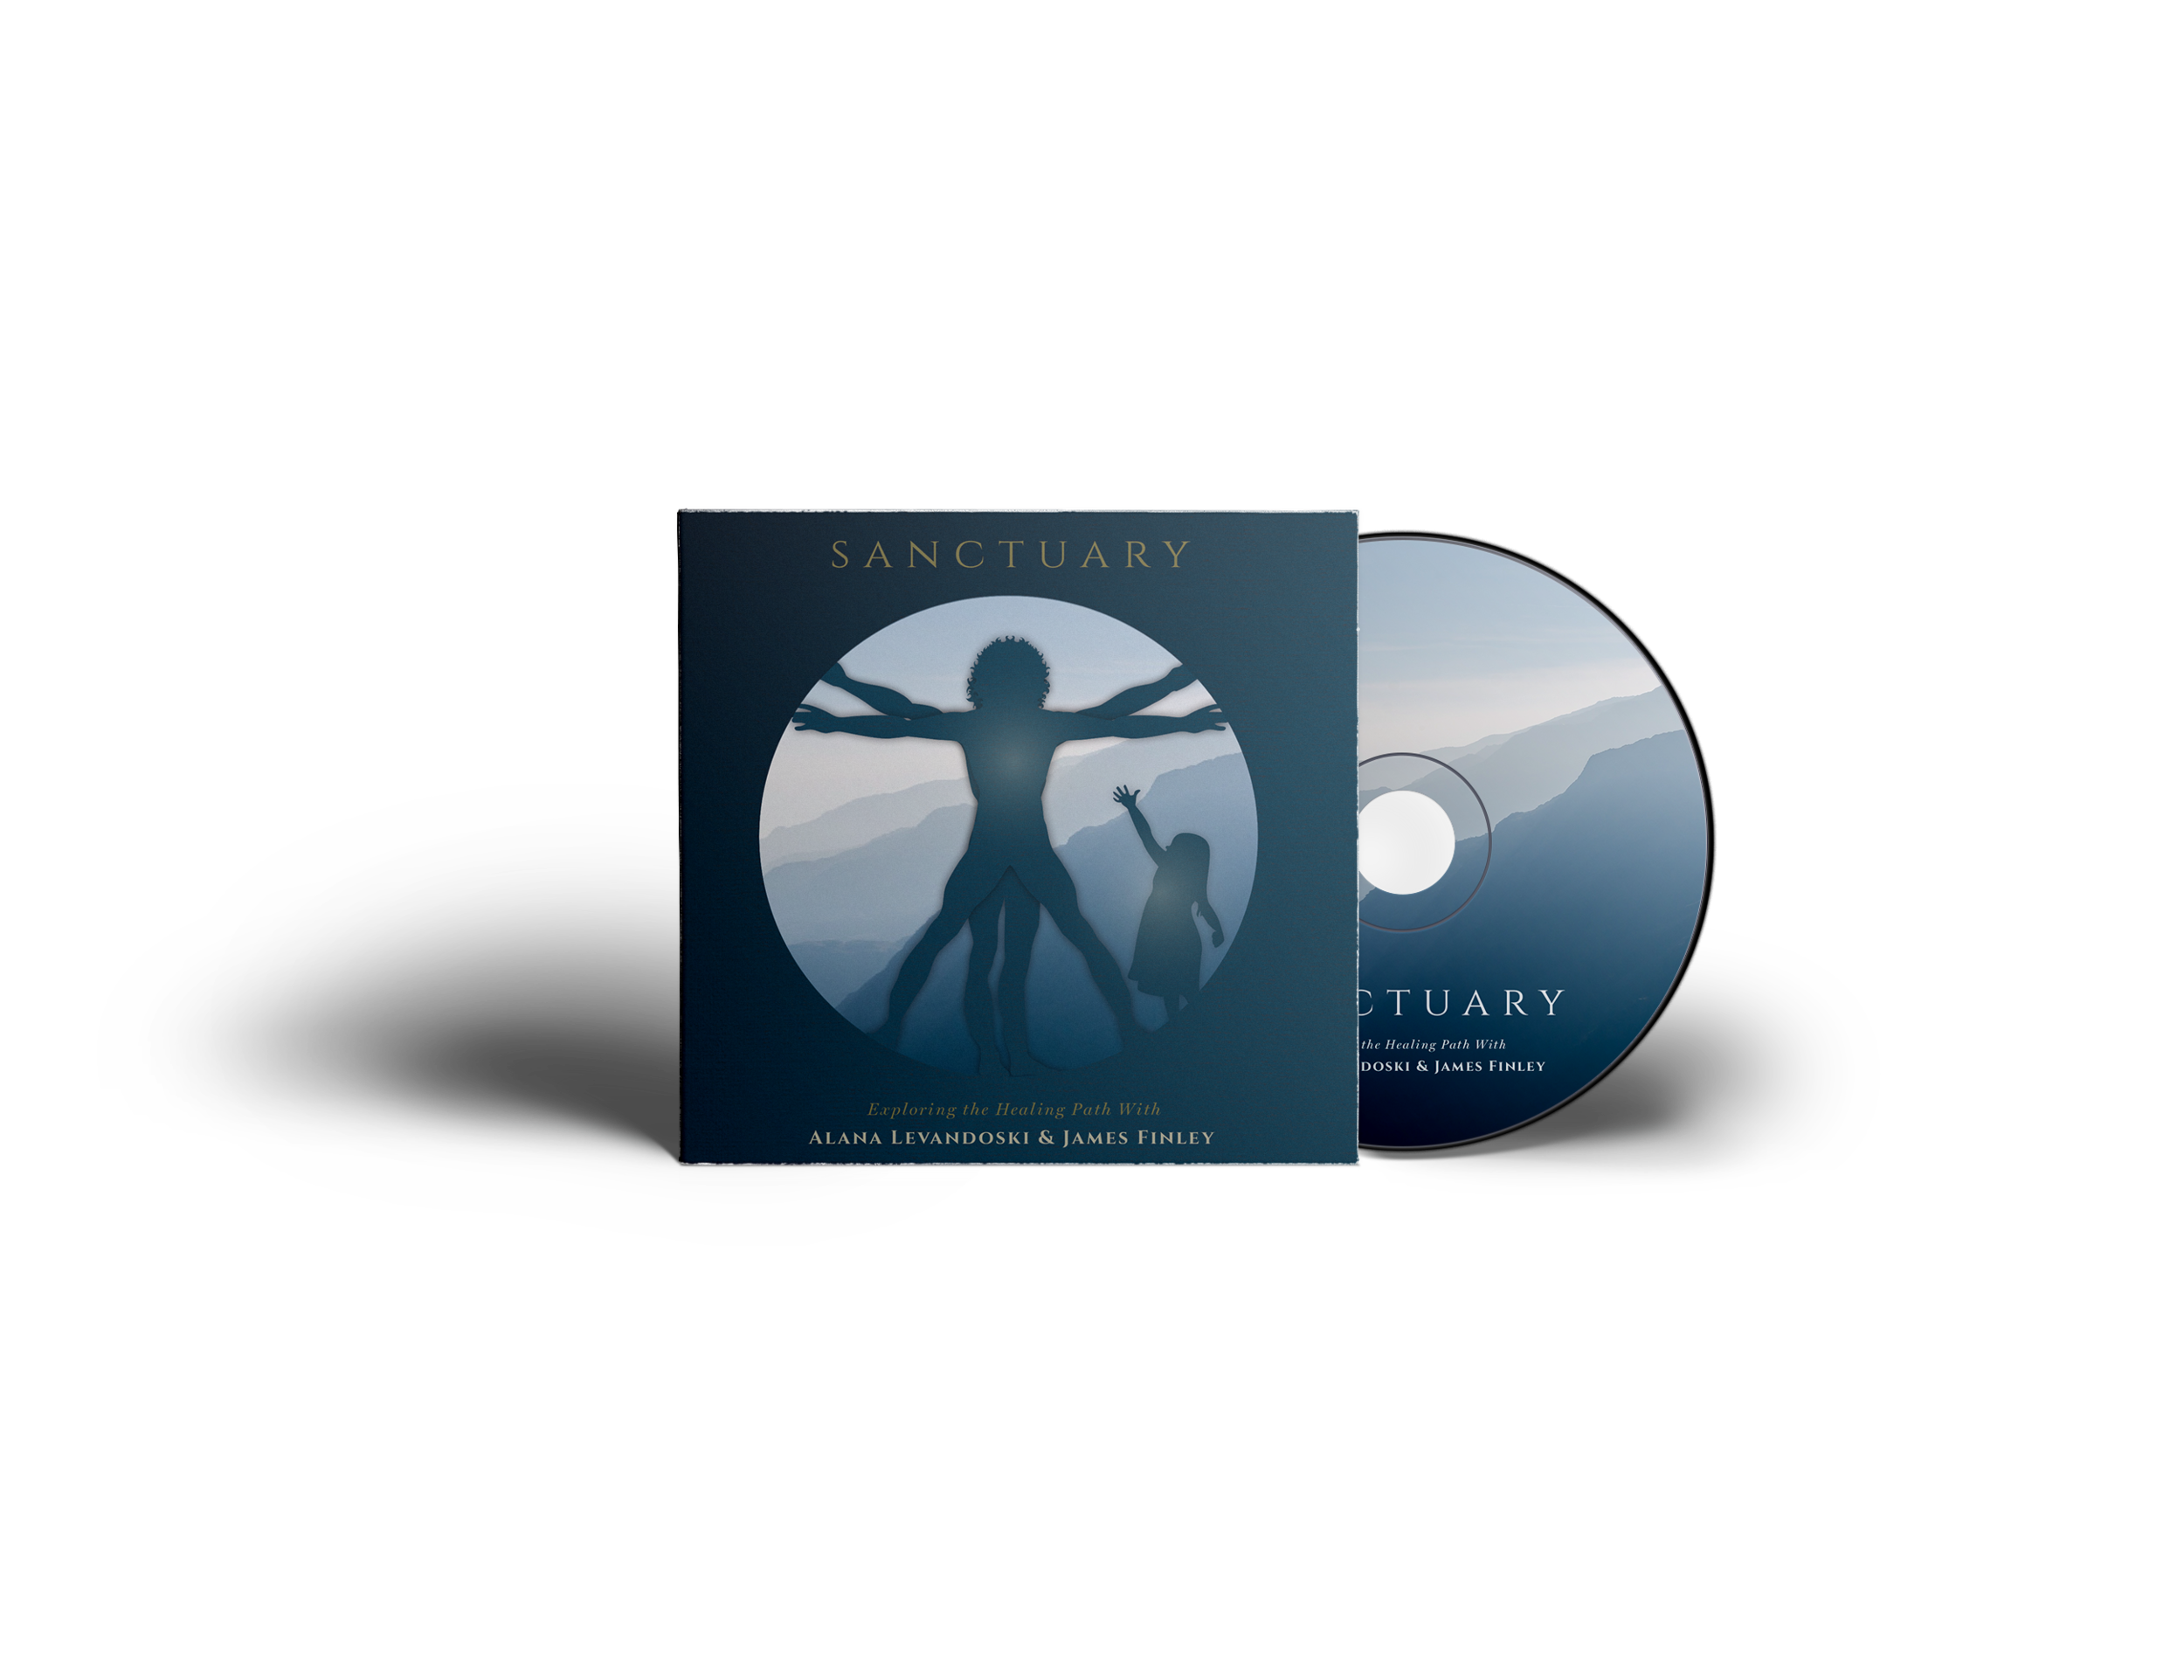 disk-and-cover-presentation-mock-up.png